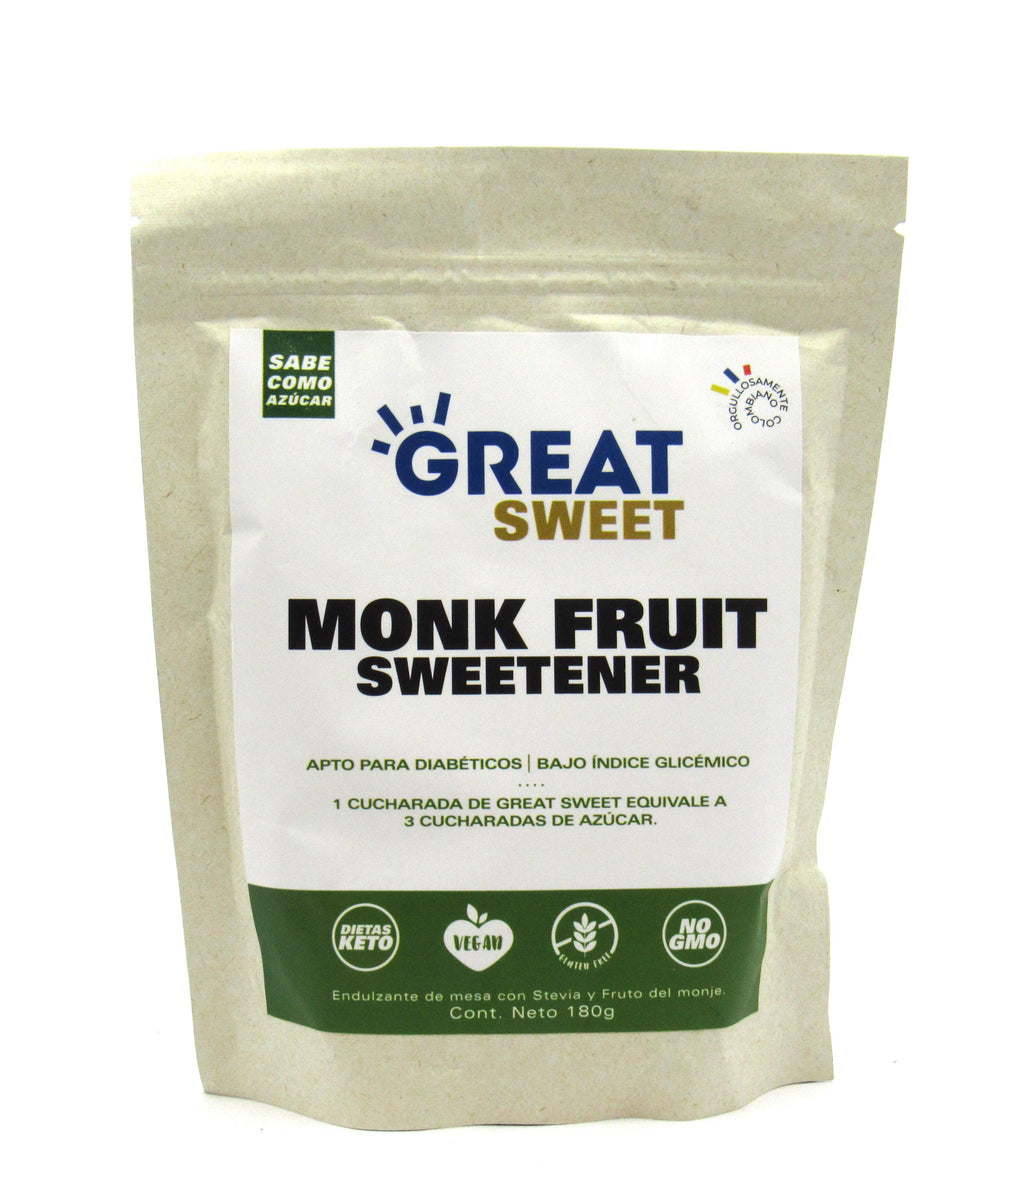 Endulzate Monk Fruit 180gr (GREAT SWEET)